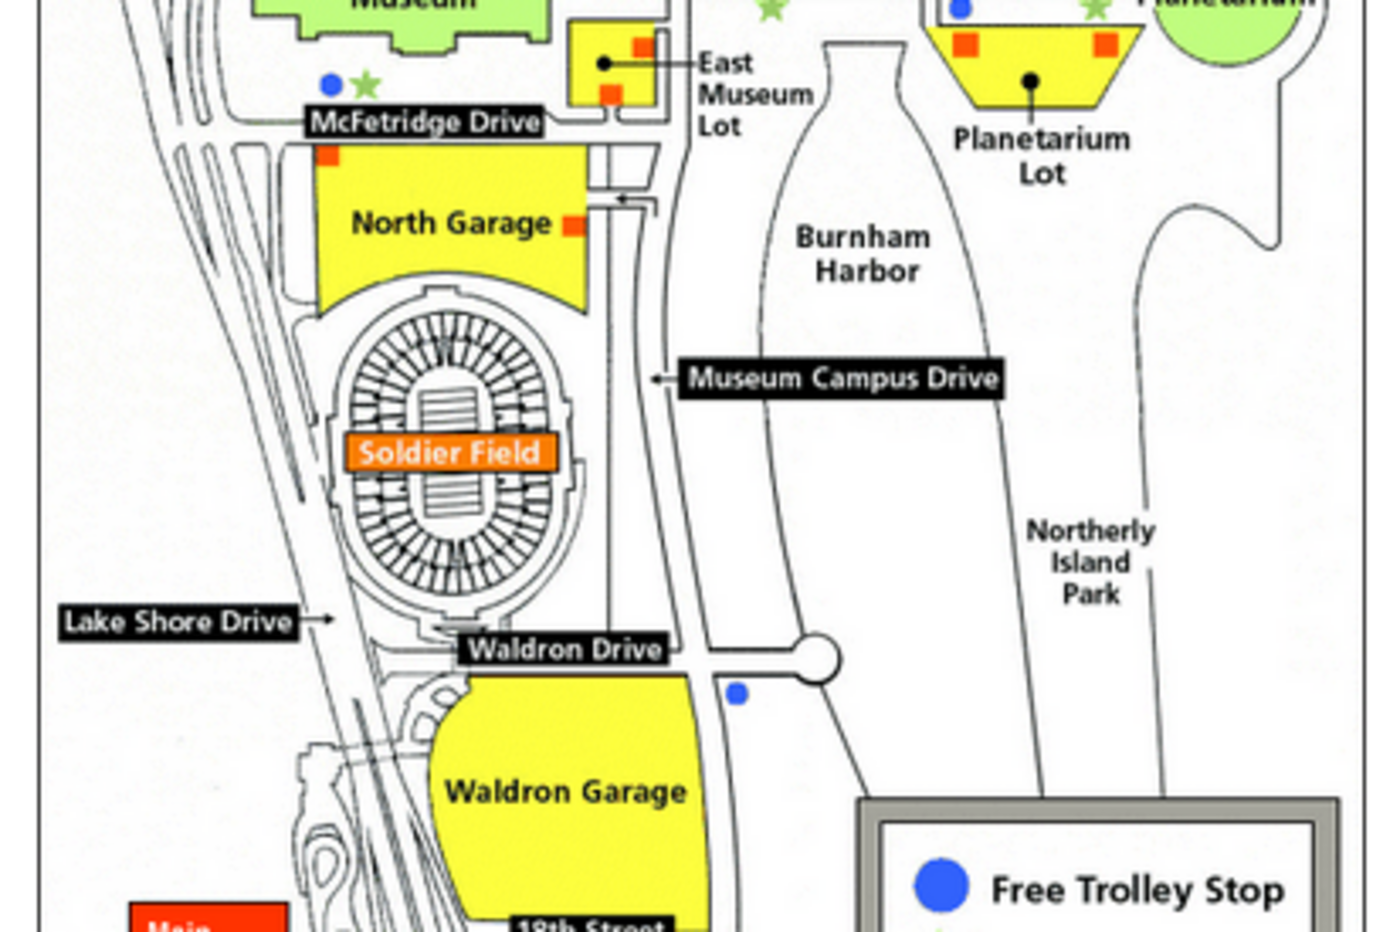 Map of the Museum Campus